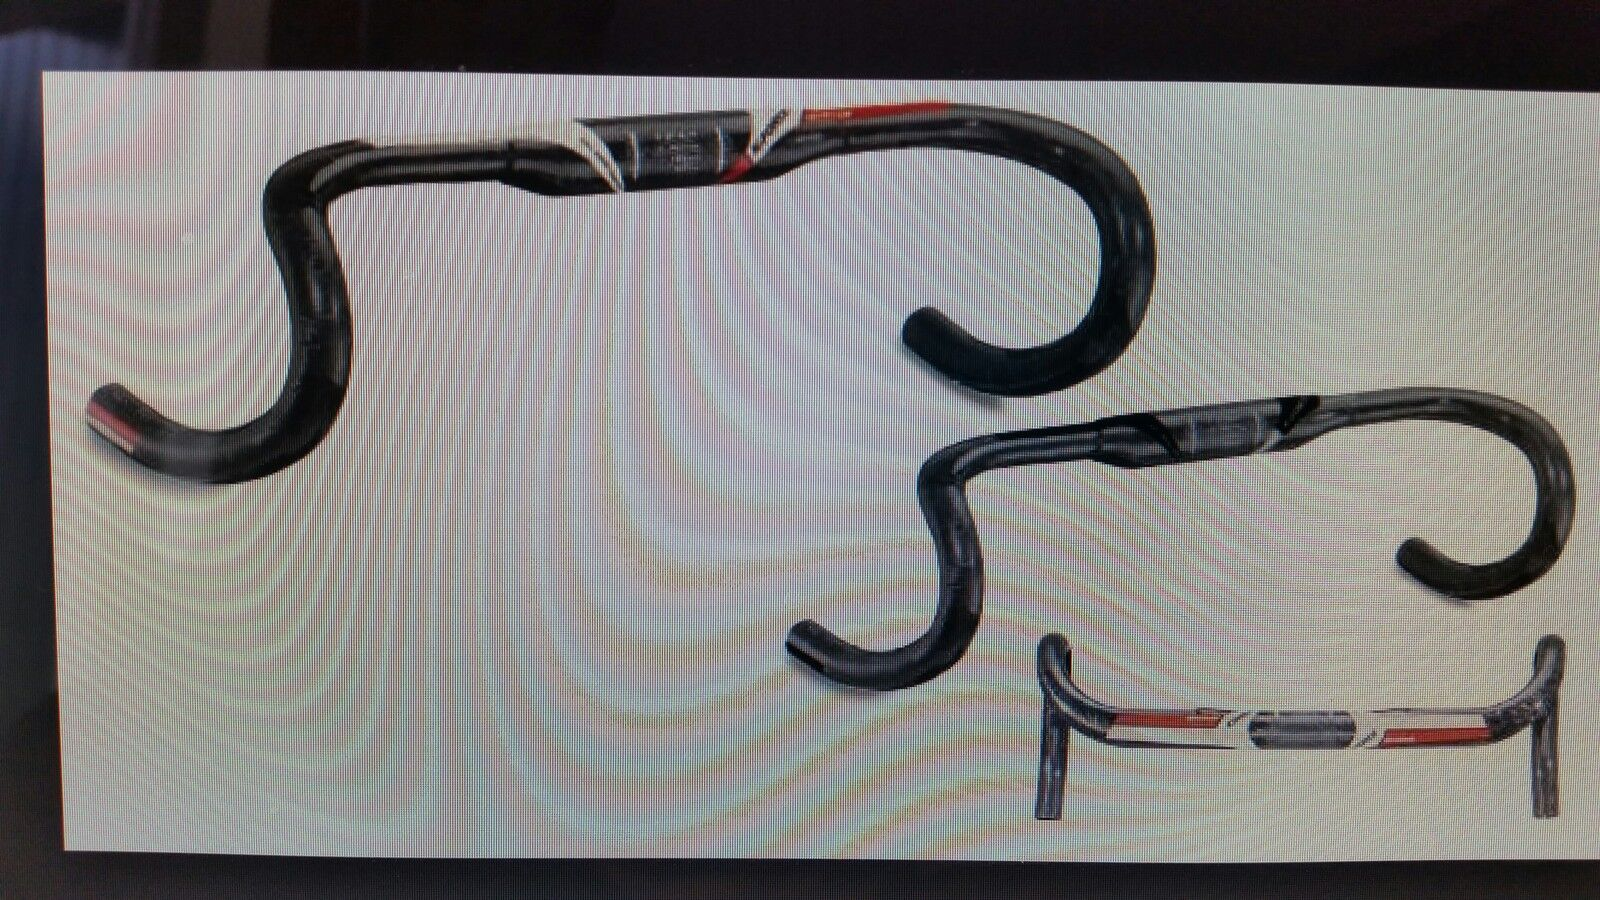 K-force new ergo handlebar manubrio 40 mod2014 originale color red black bianc